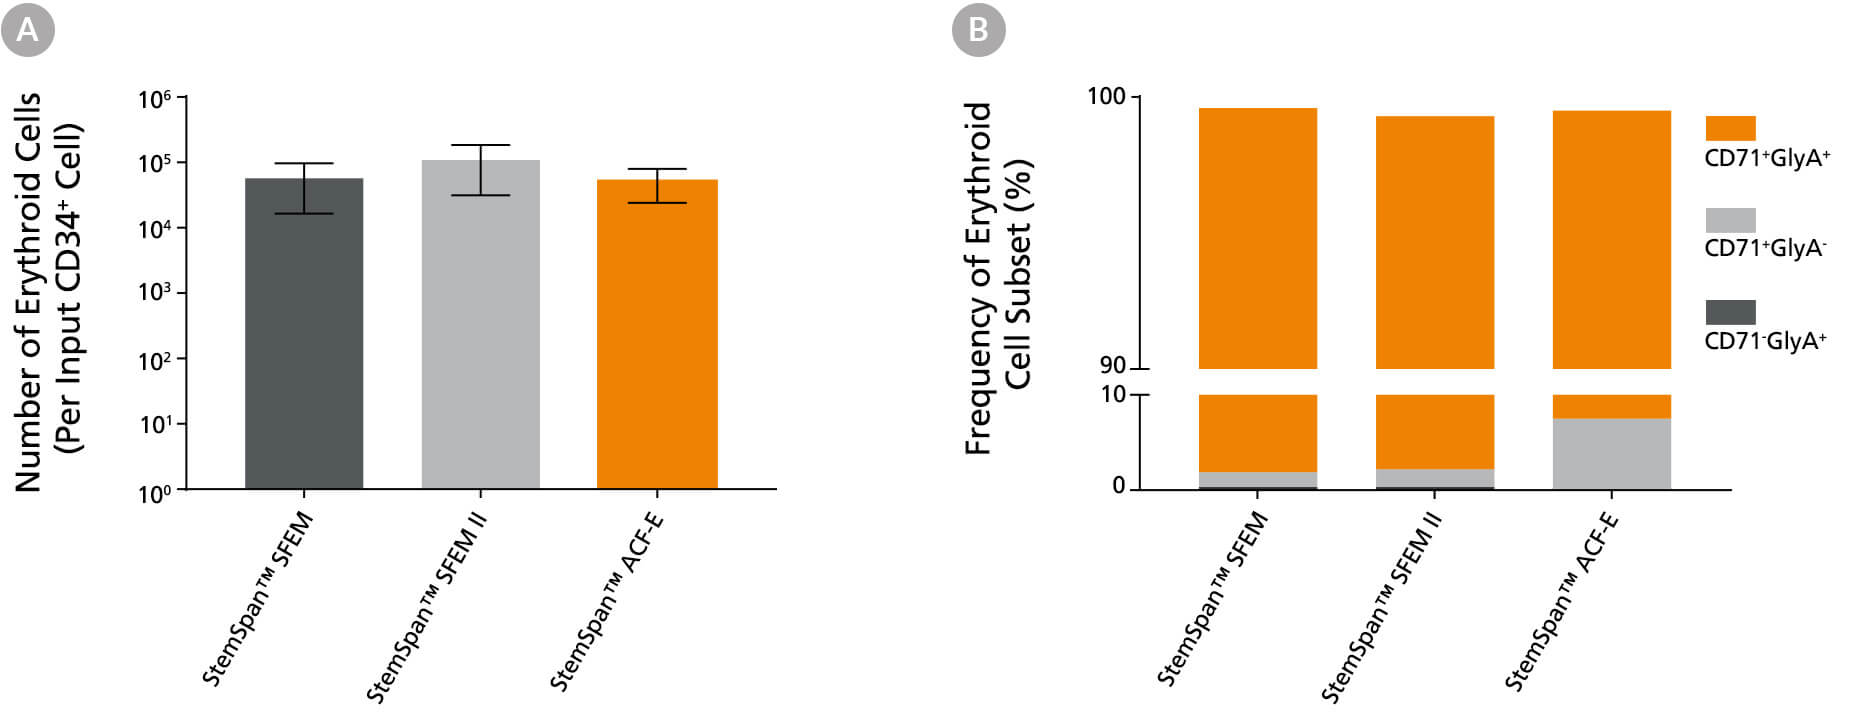 Bar graph of stemspan media efficiency for erythroid cell expansion